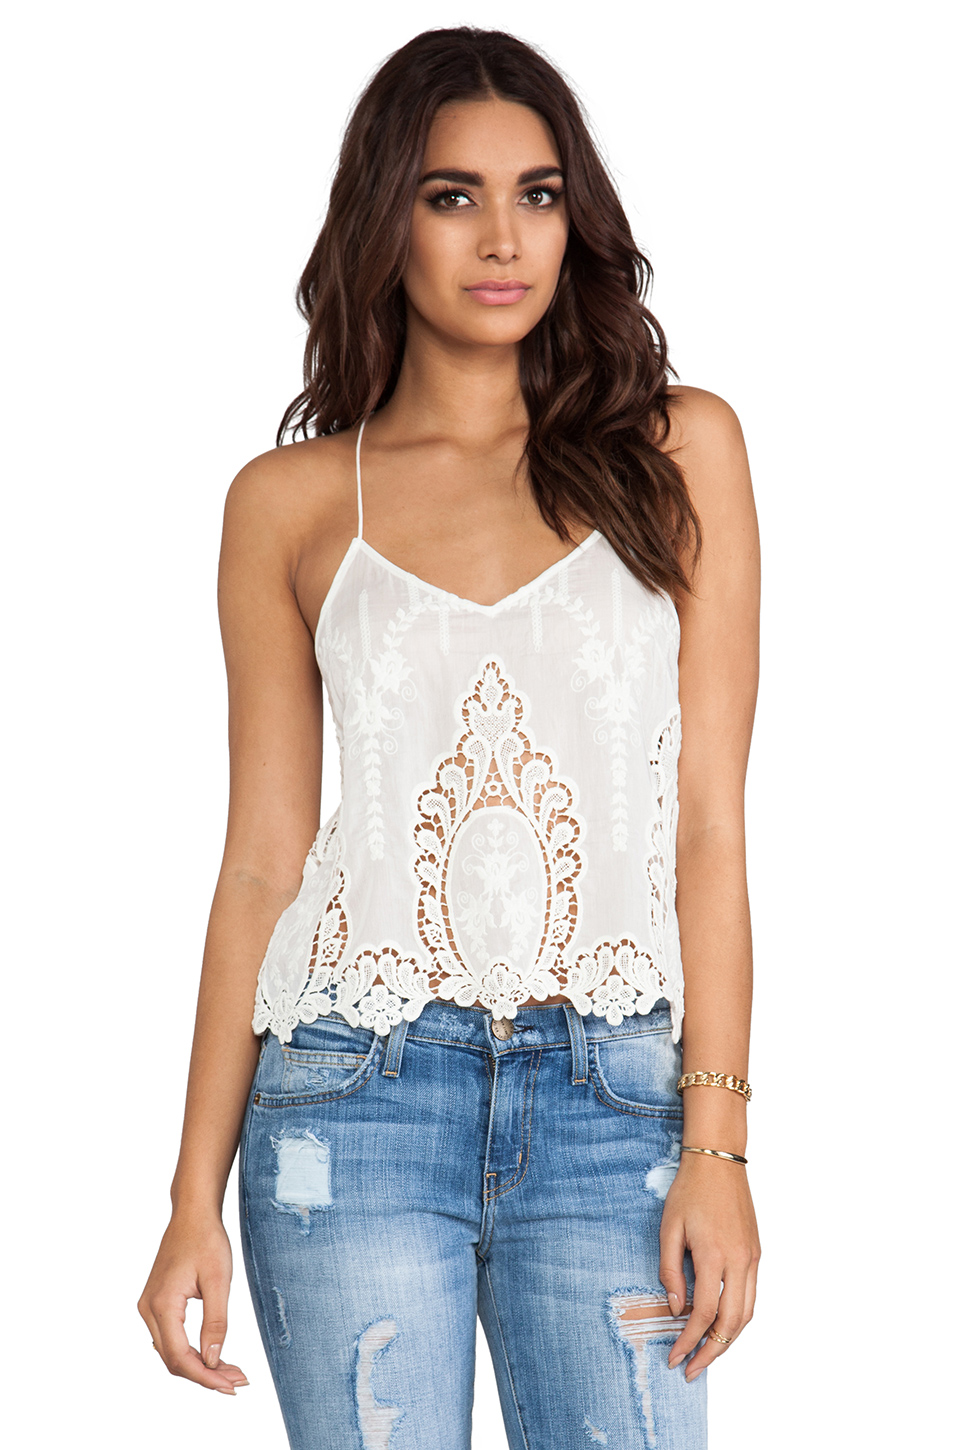 Dolce Vita Sabelle Tank in White & Natural | REVOLVE